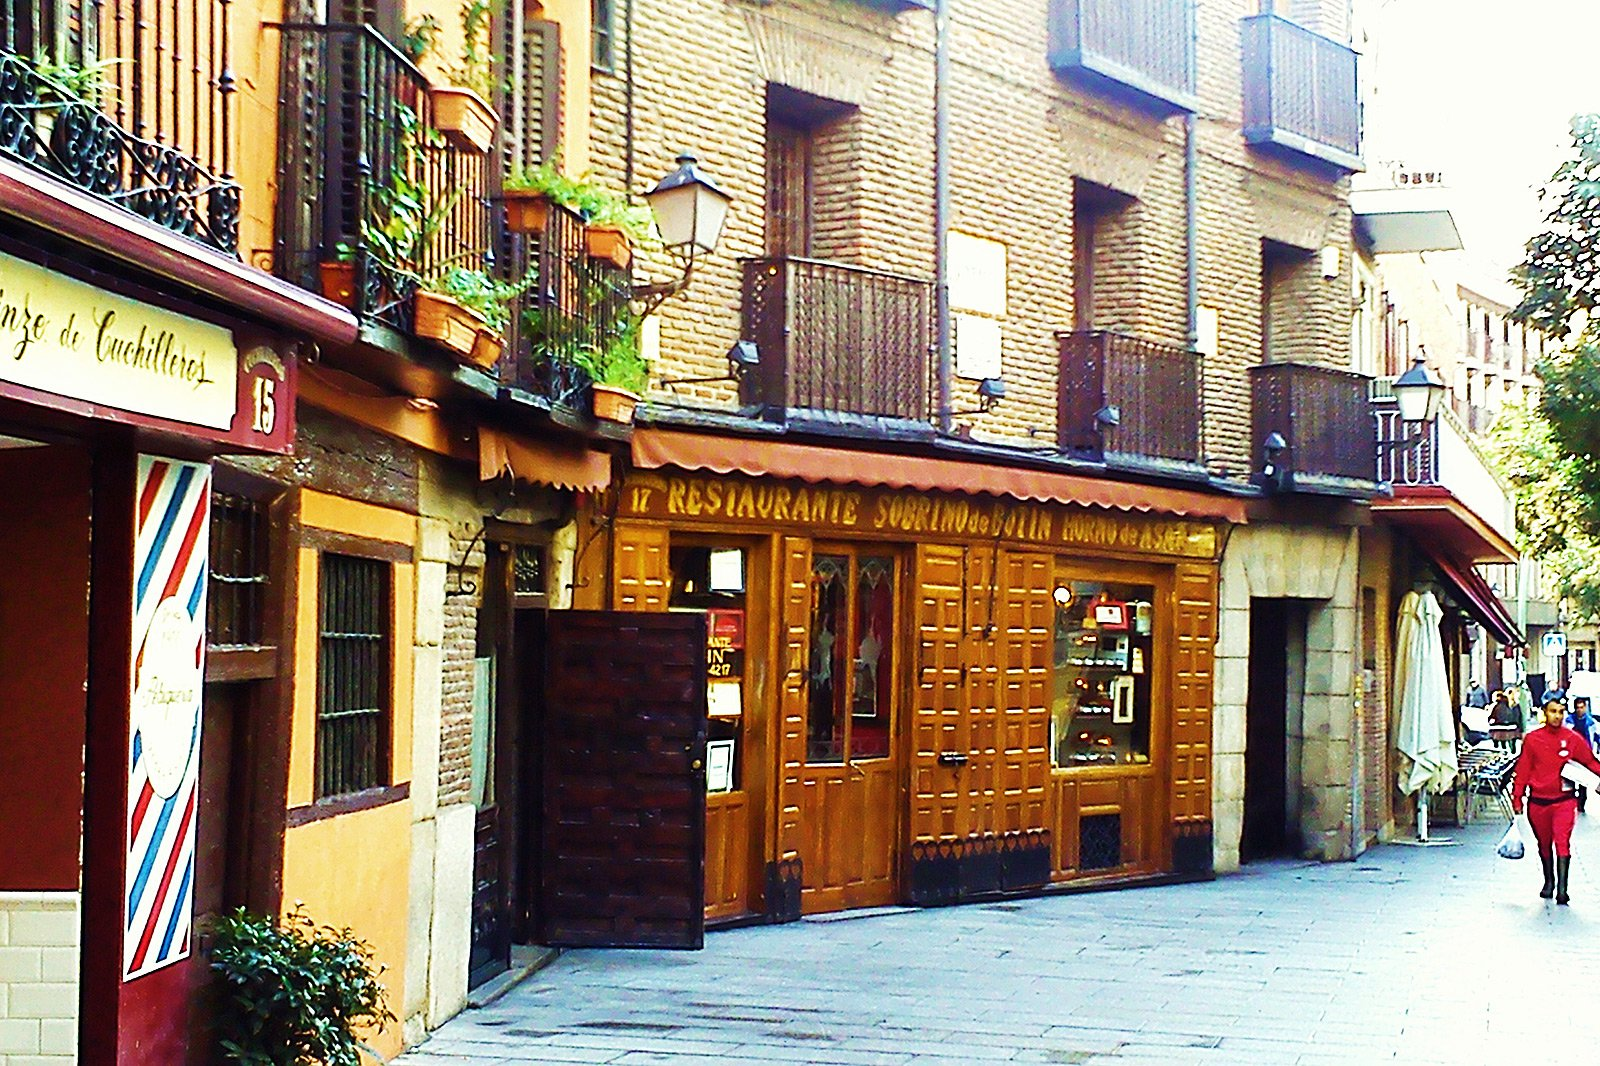 Botin Restaurant, Madrid